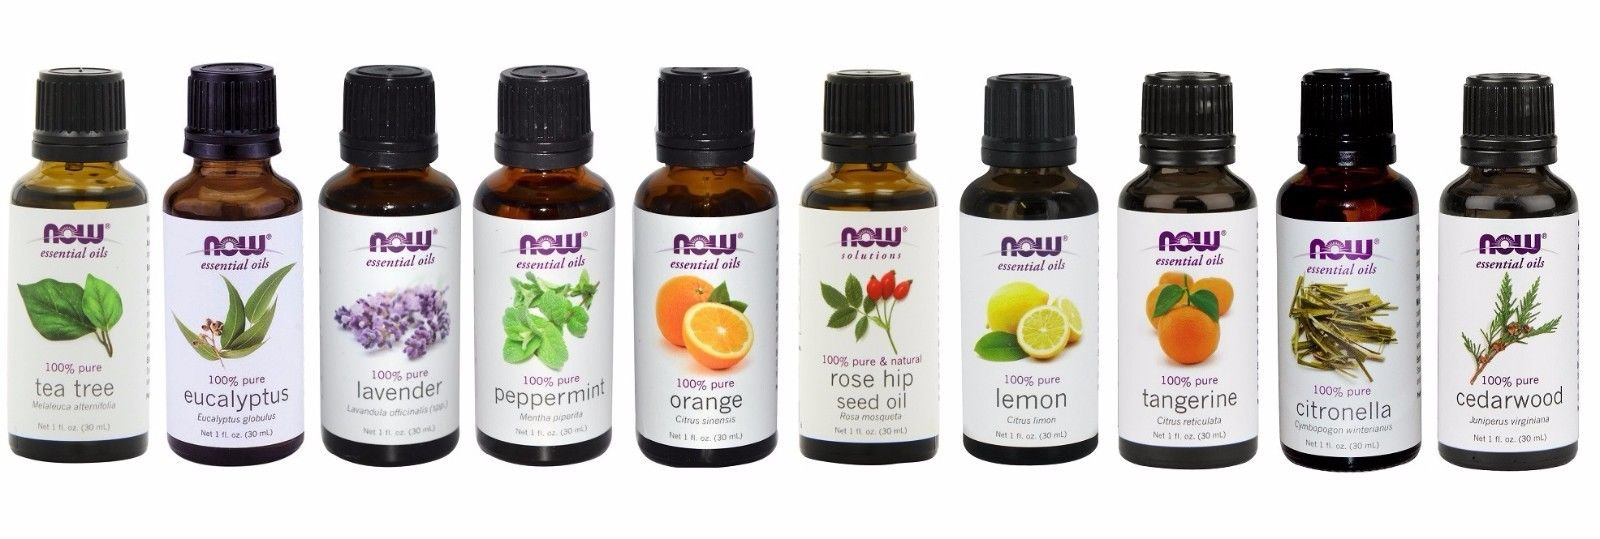 Now Foods Essential Oils, Pack of 10